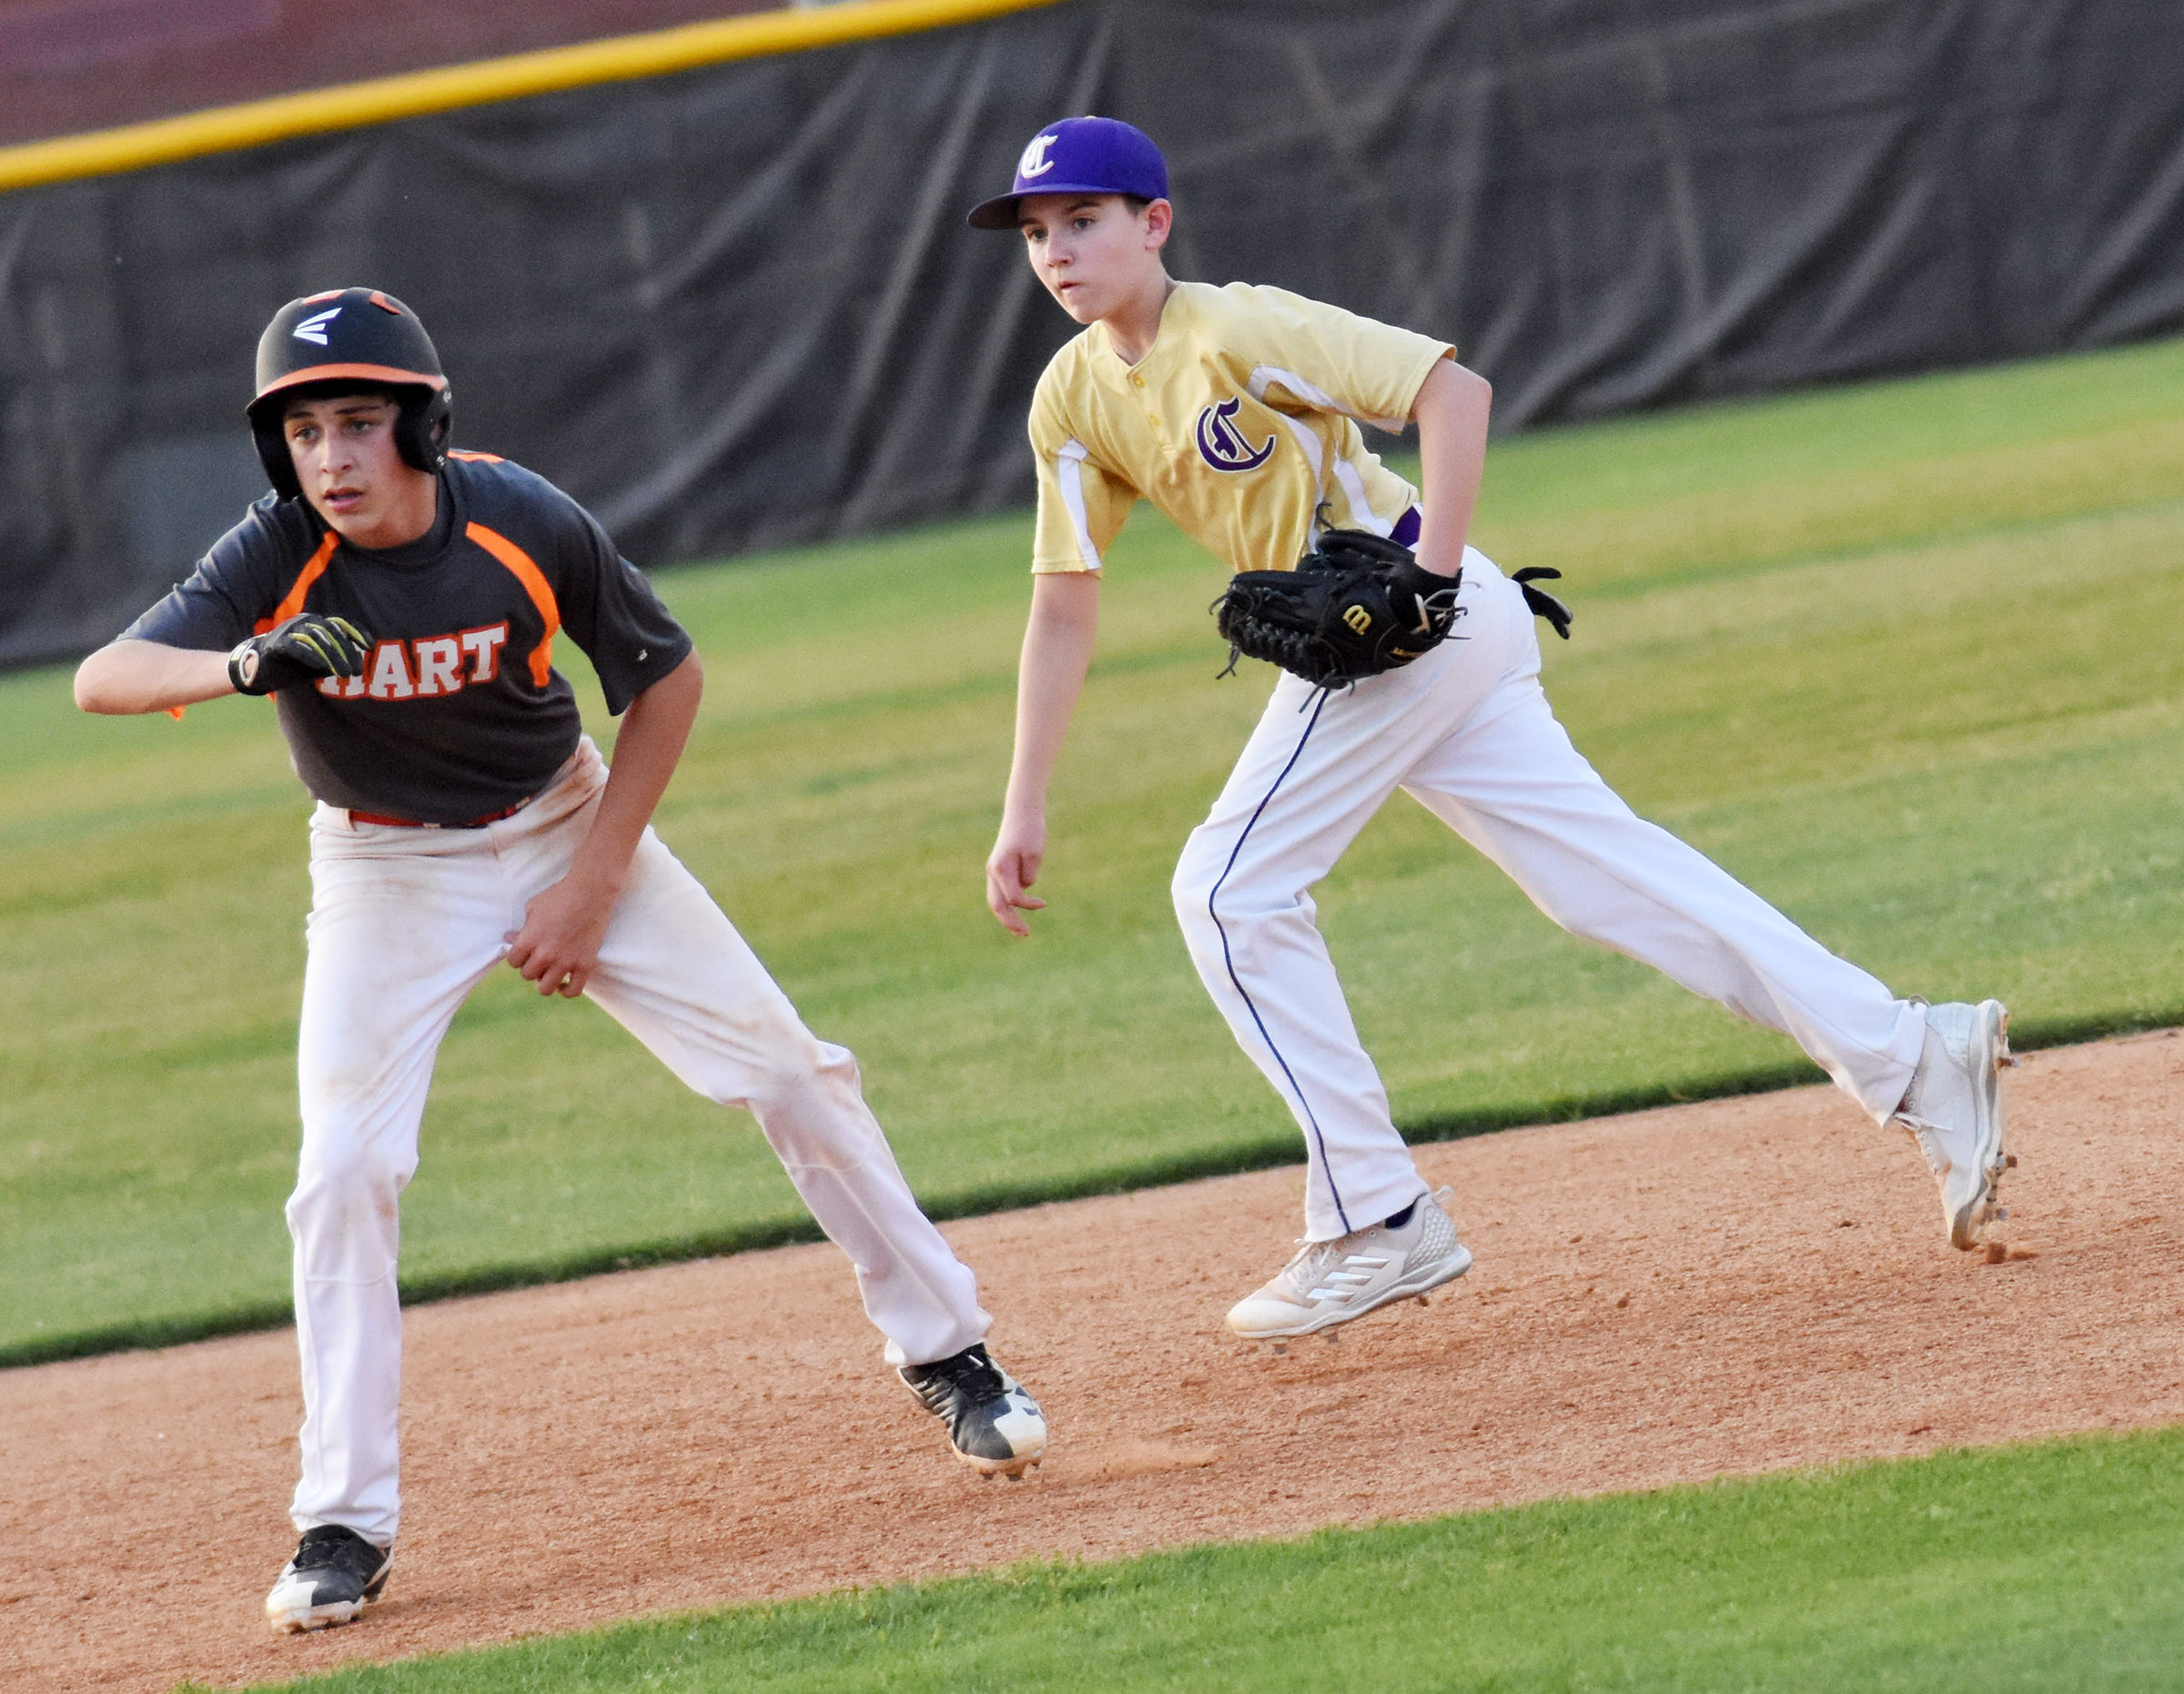 CMS seventh-grader Bryce Newton keeps the runner close at second.